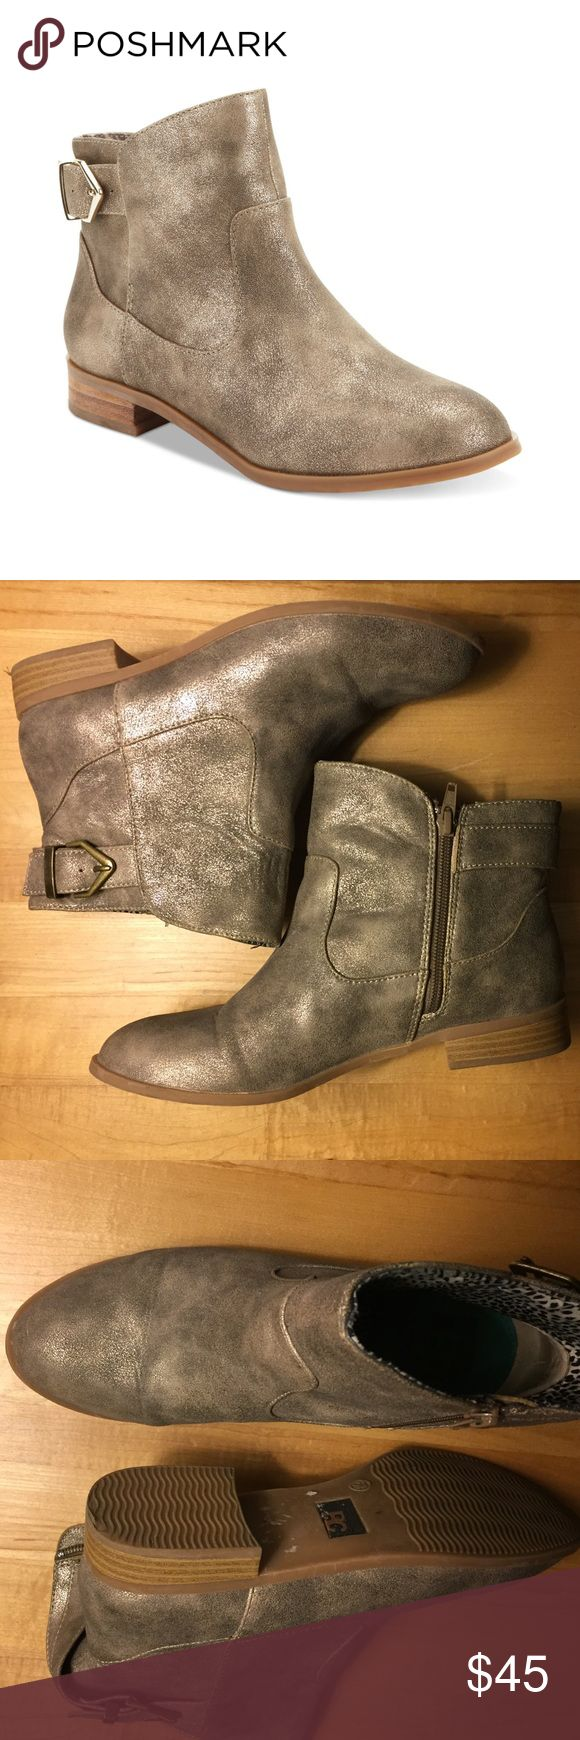 """BC Footwear Building Blocks Metallic Ankle Boot A sloping top line and buckle detail lend modern touches to this metallic low cut ankle boot by BC Footwear Building Blocks. Synthetic sole. Shaft measures approximately 5.5"""" from arch. Heel measures approximately 1.5"""" . Boot opening measures approximately 10.75"""" around. 🚫No trades🚫 BC Footwear Shoes Ankle Boots & Booties"""